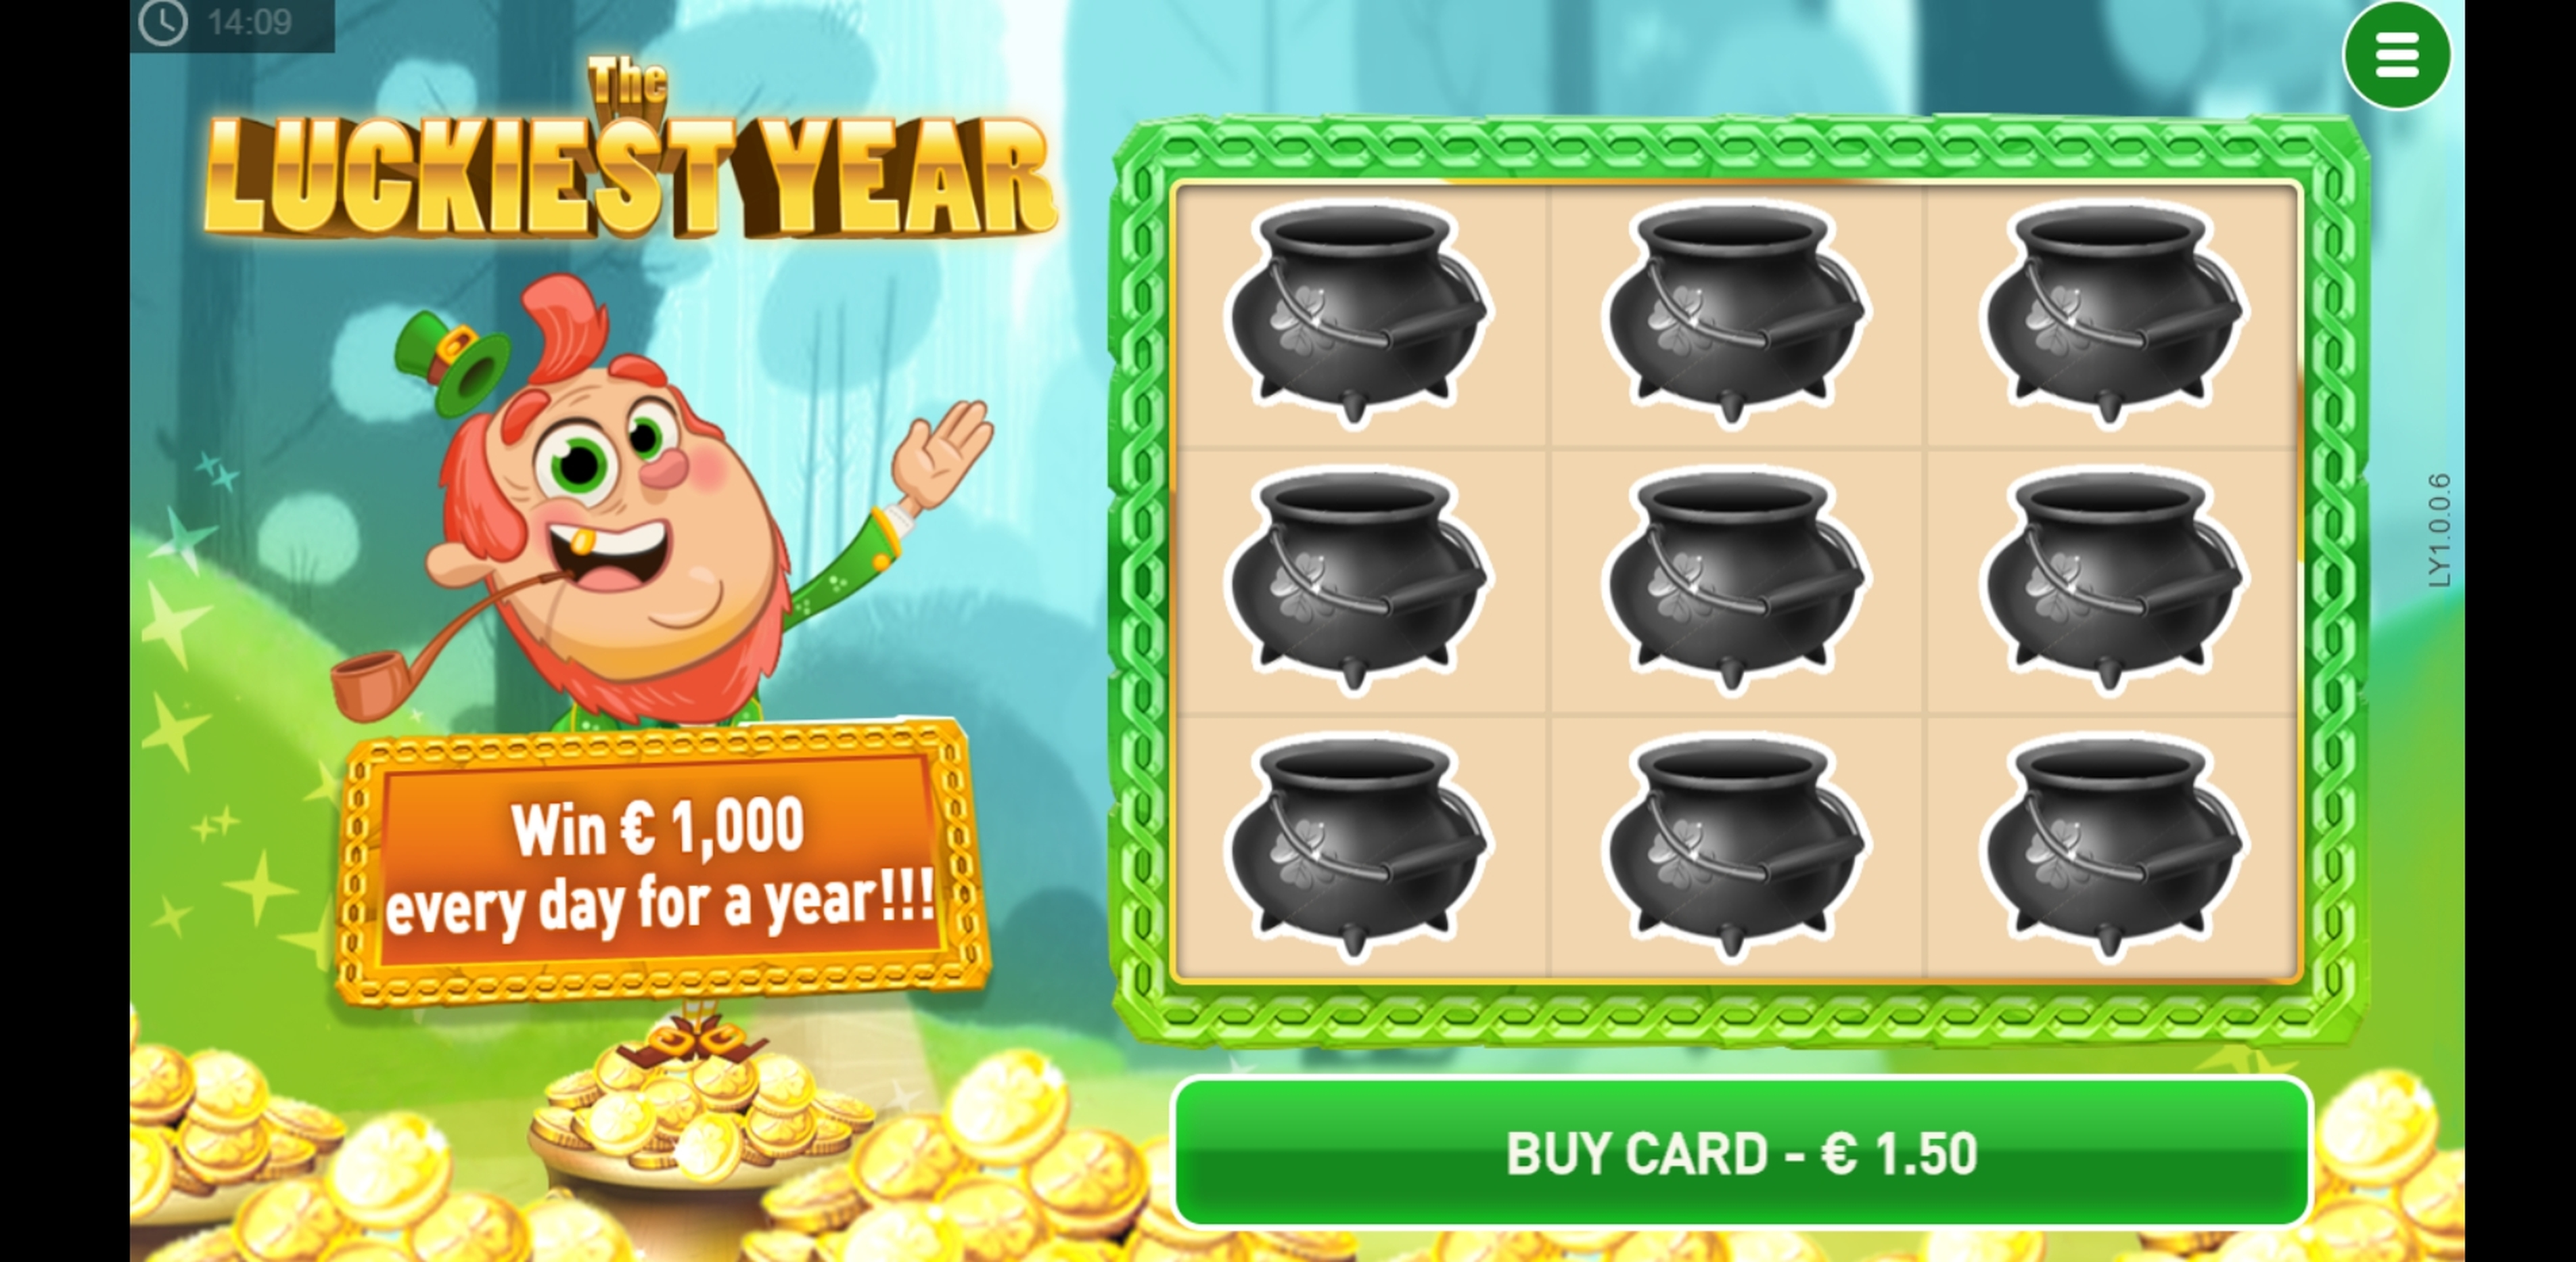 Reels in The Luckiest Year Scratch Slot Game by PariPlay